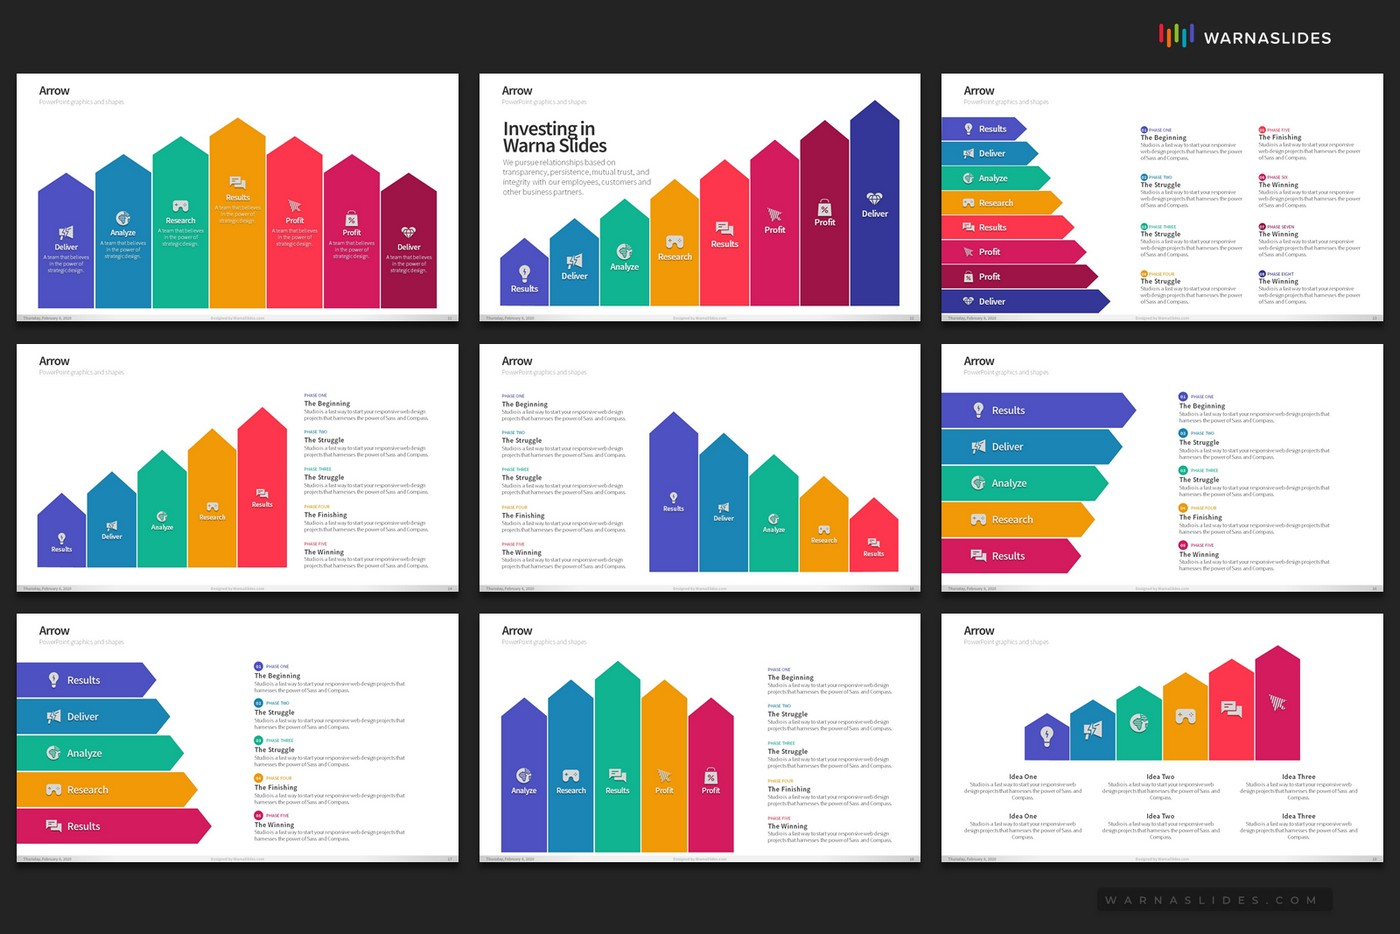 Arrows-Chevron-Ladder-Growth-PowerPoint-Template-for-Business-Pitch-Deck-Professional-Creative-PowerPoint-Icons-008